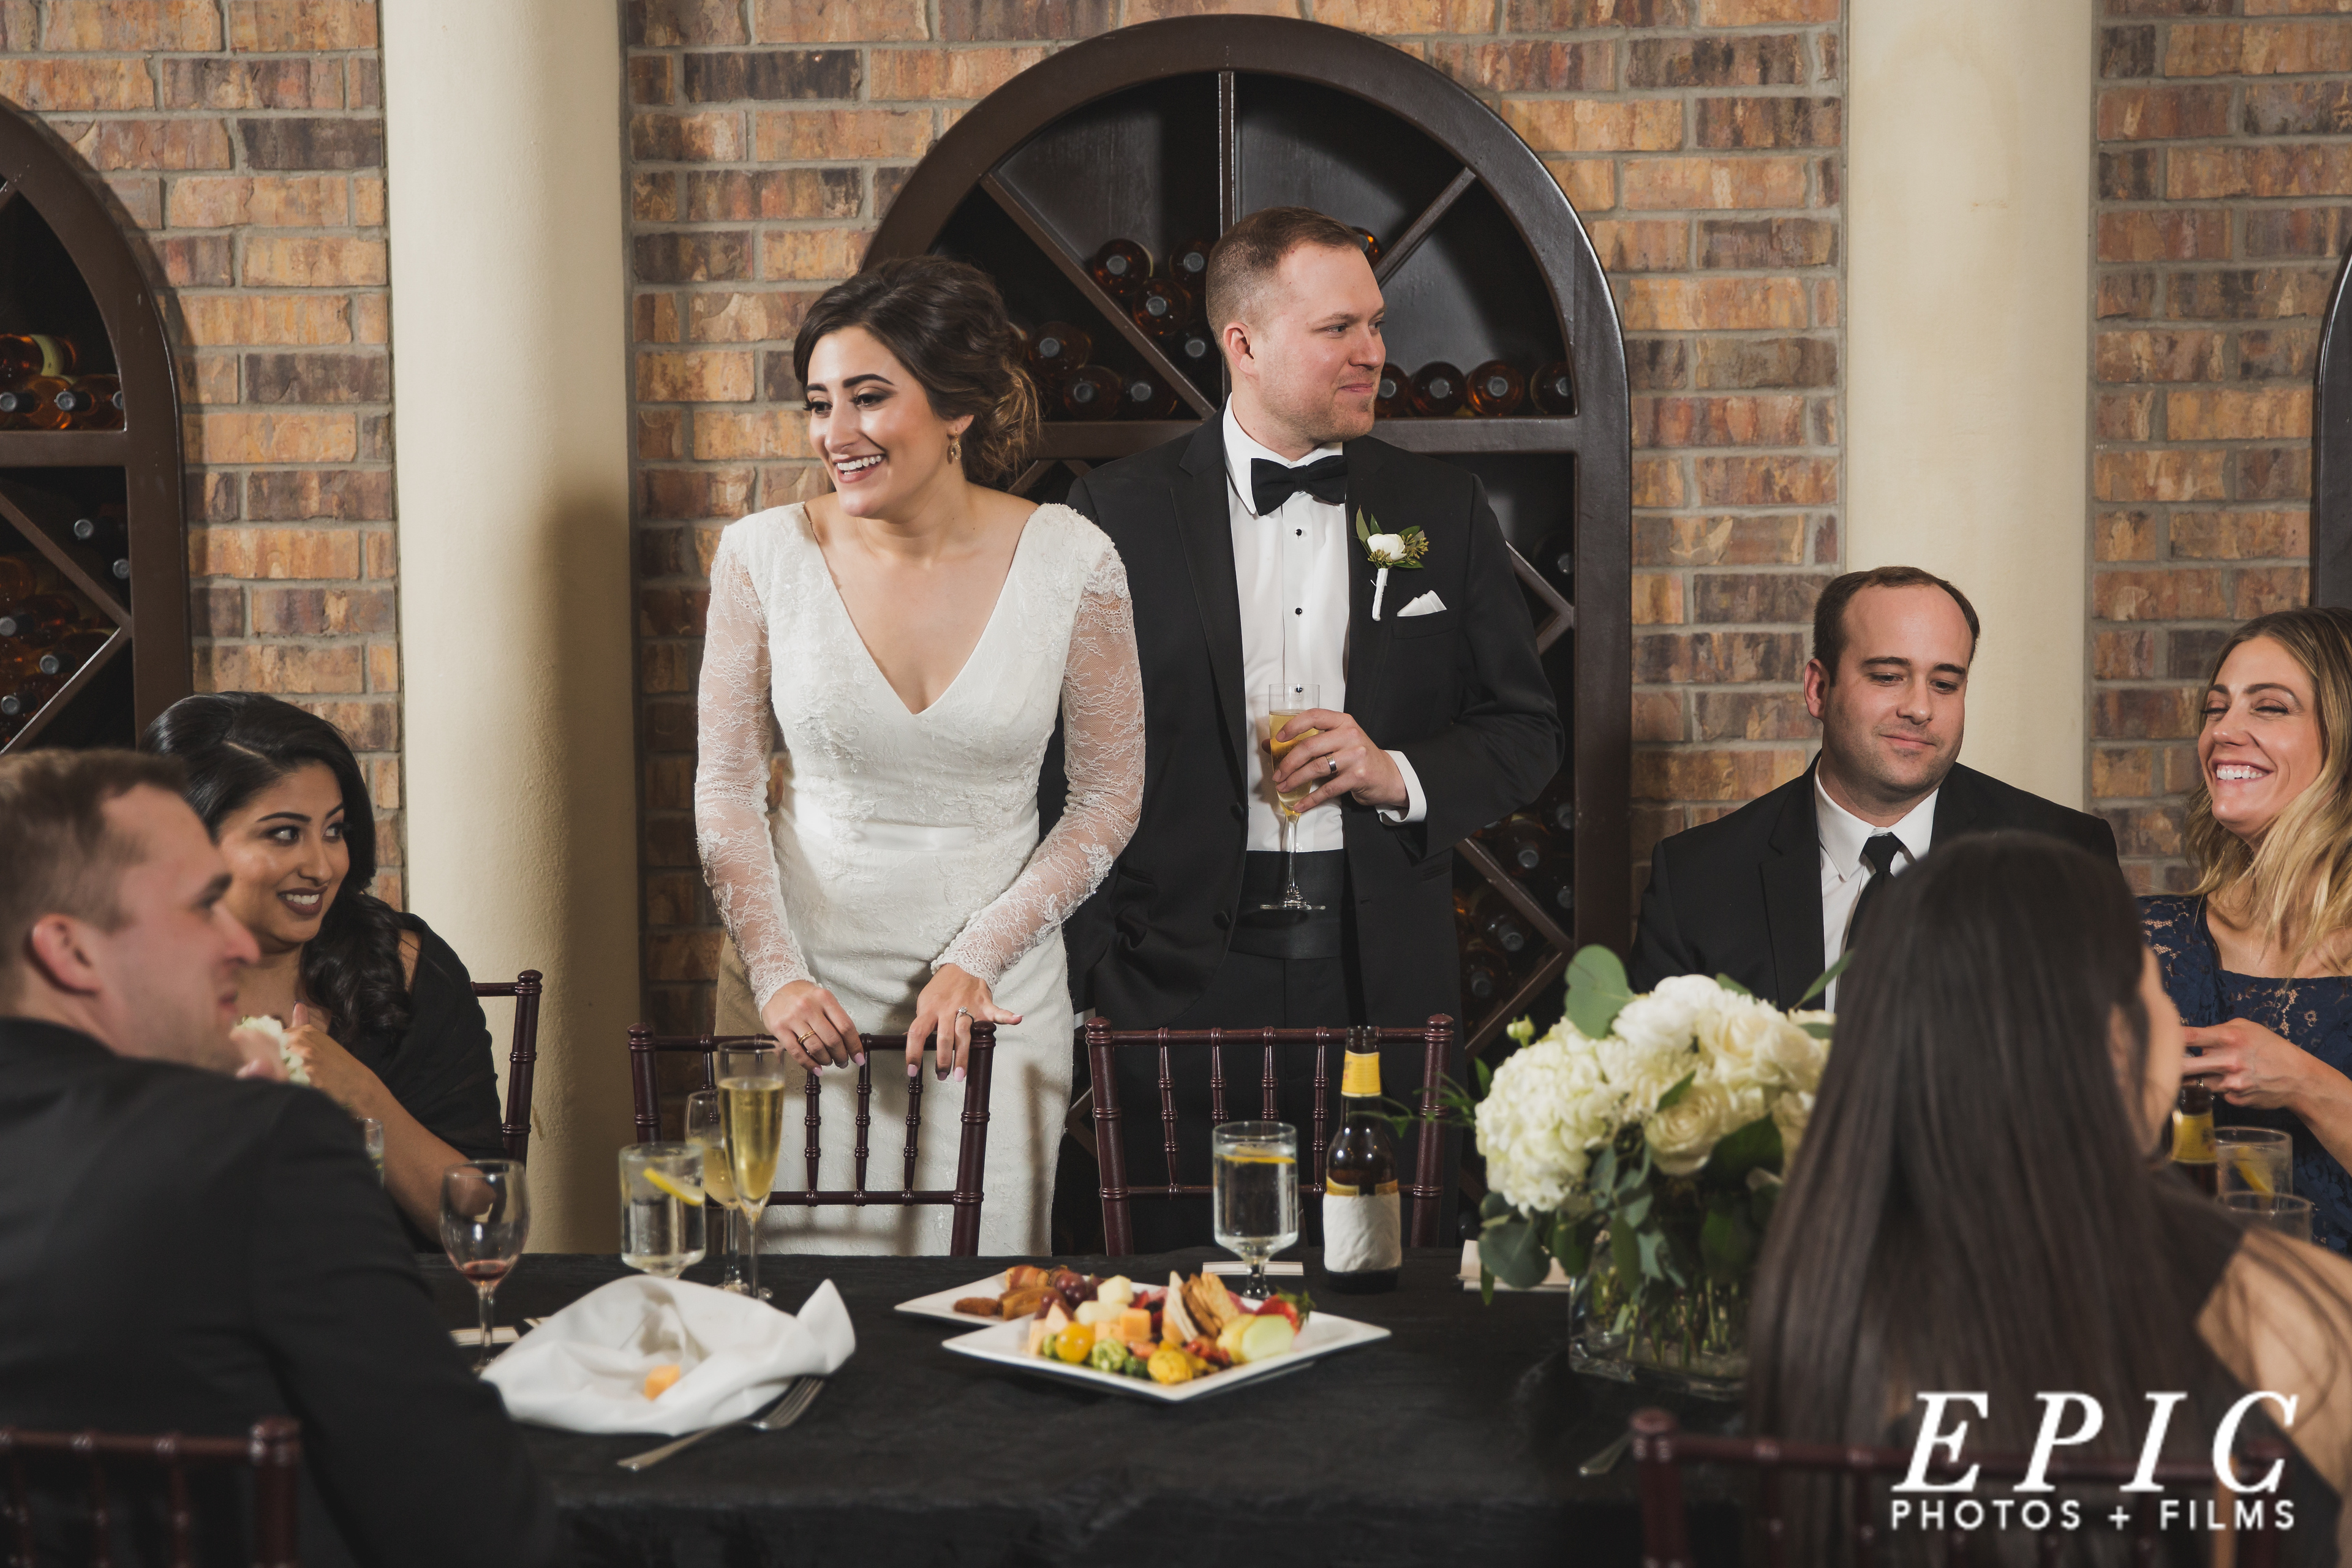 bride and groom stand of a toast behind their head table covered with a black table cloth and white flowers in glass vases